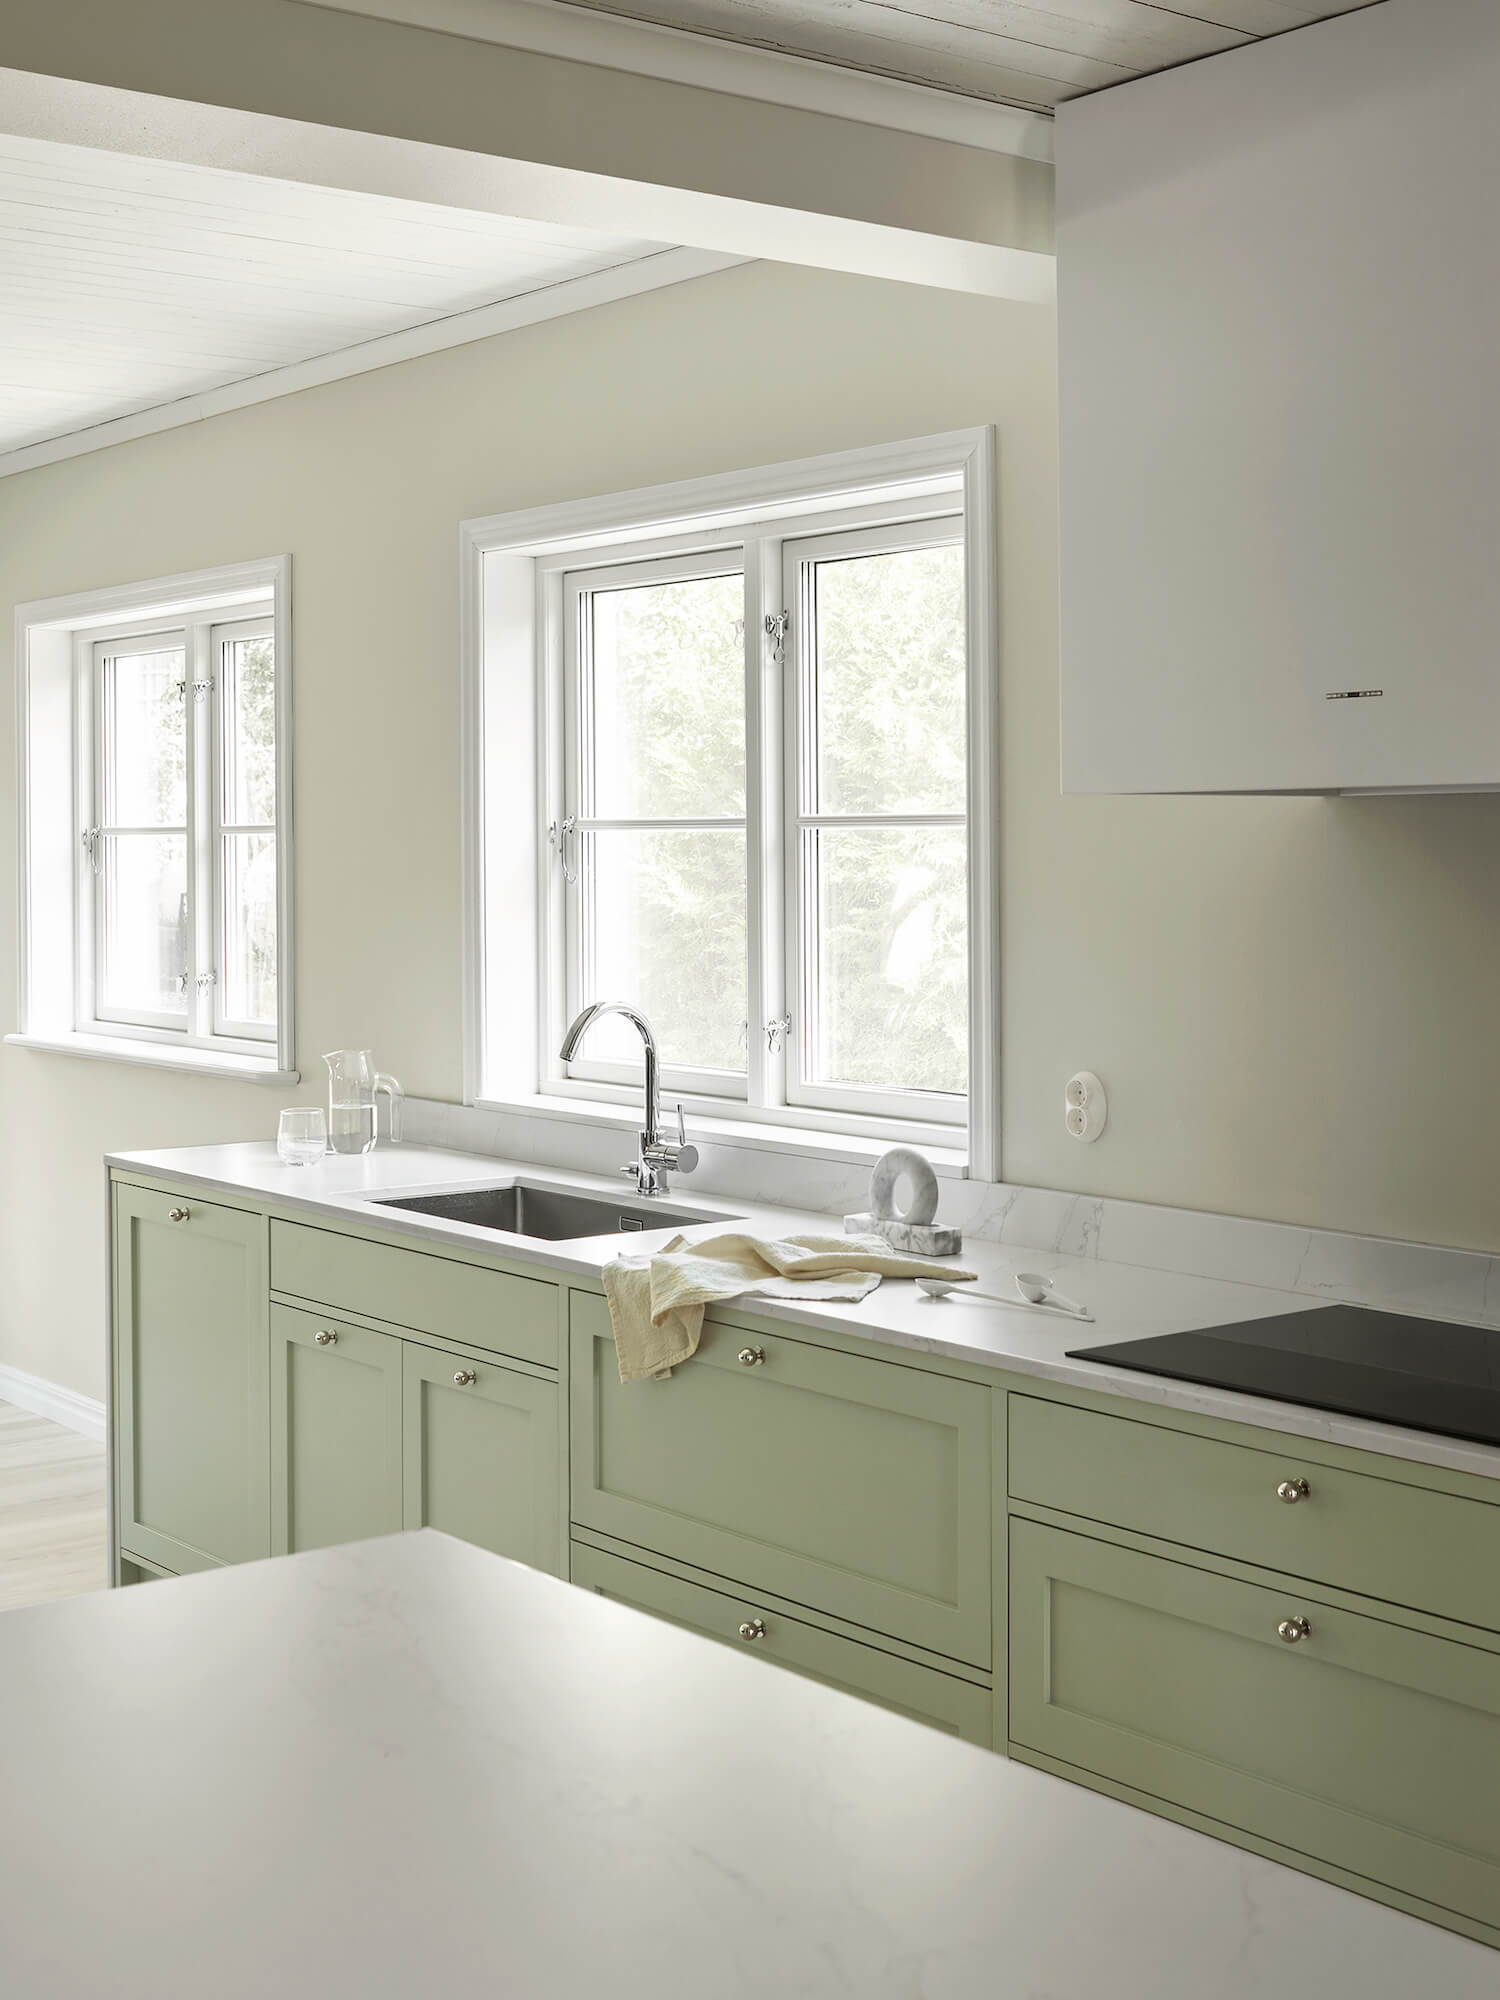 Pale Green Shaker Kitchen by Nordiska Kok | Designing a Nordic-Style Kitchen